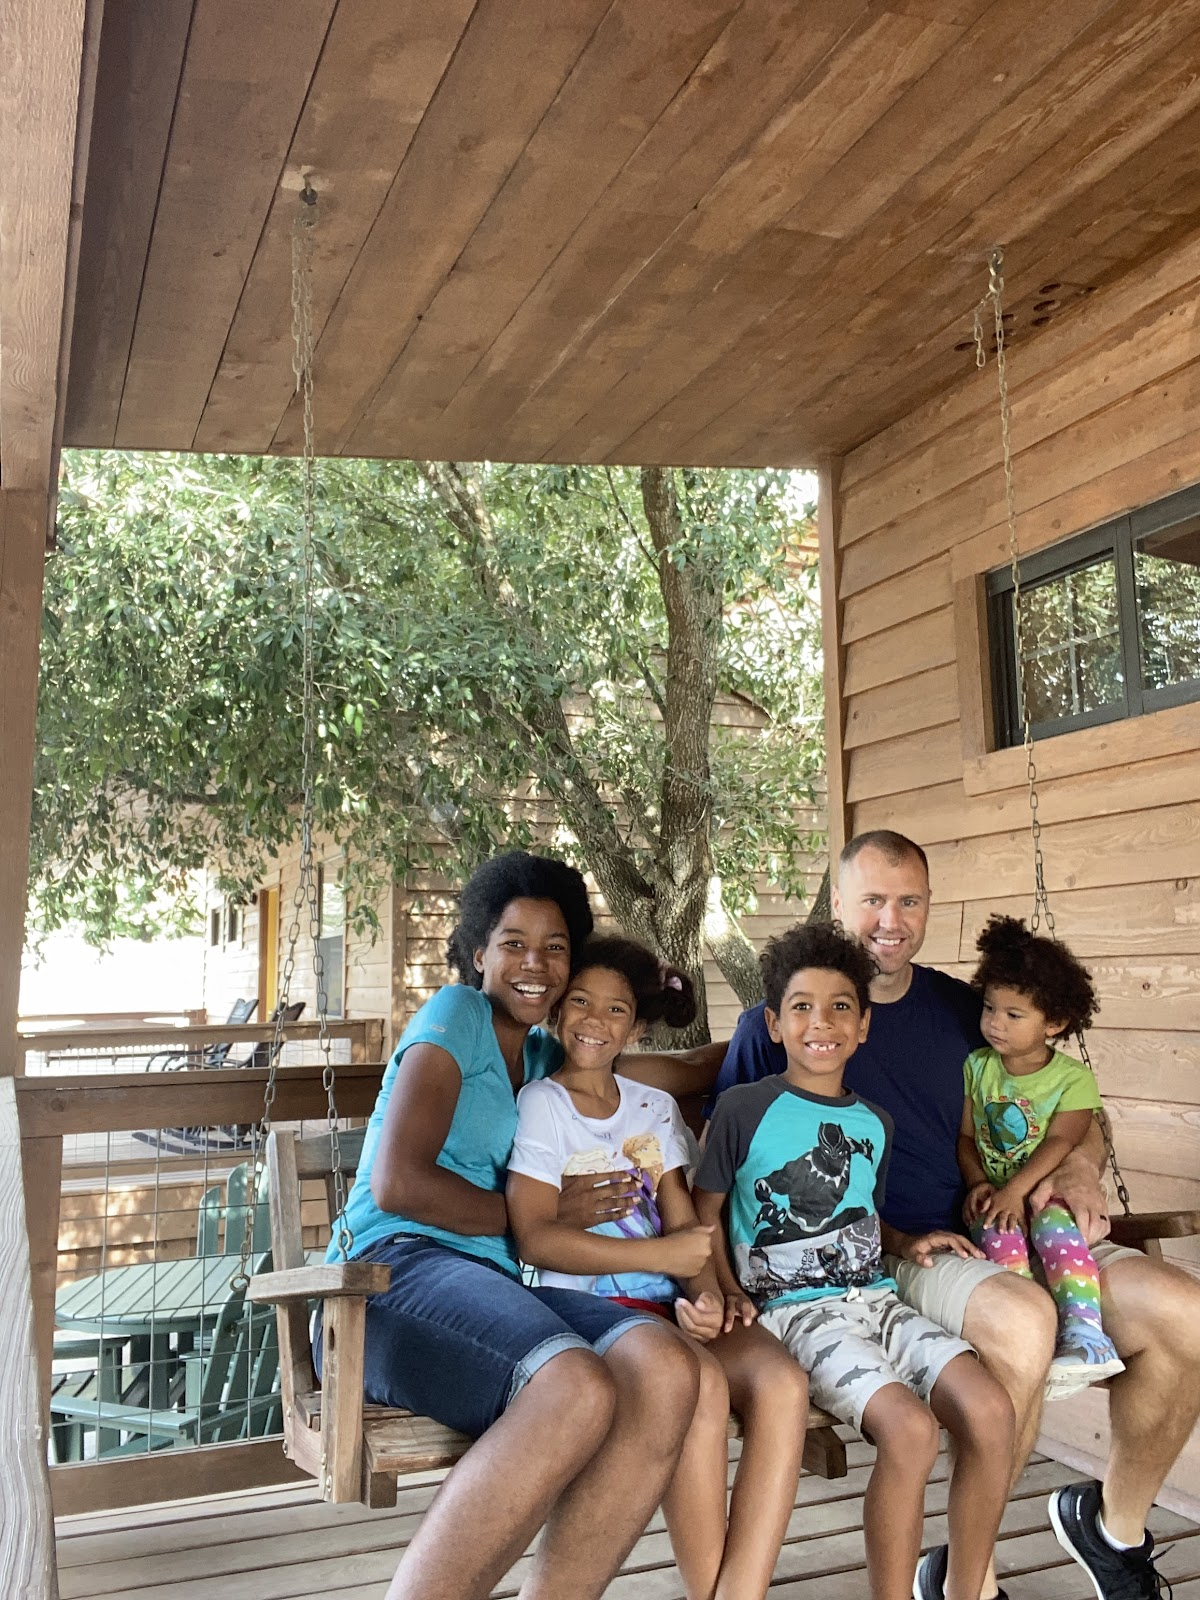 Interracial family sitting on a porch swing of a cabin which is something to remember on your family camping checklist.